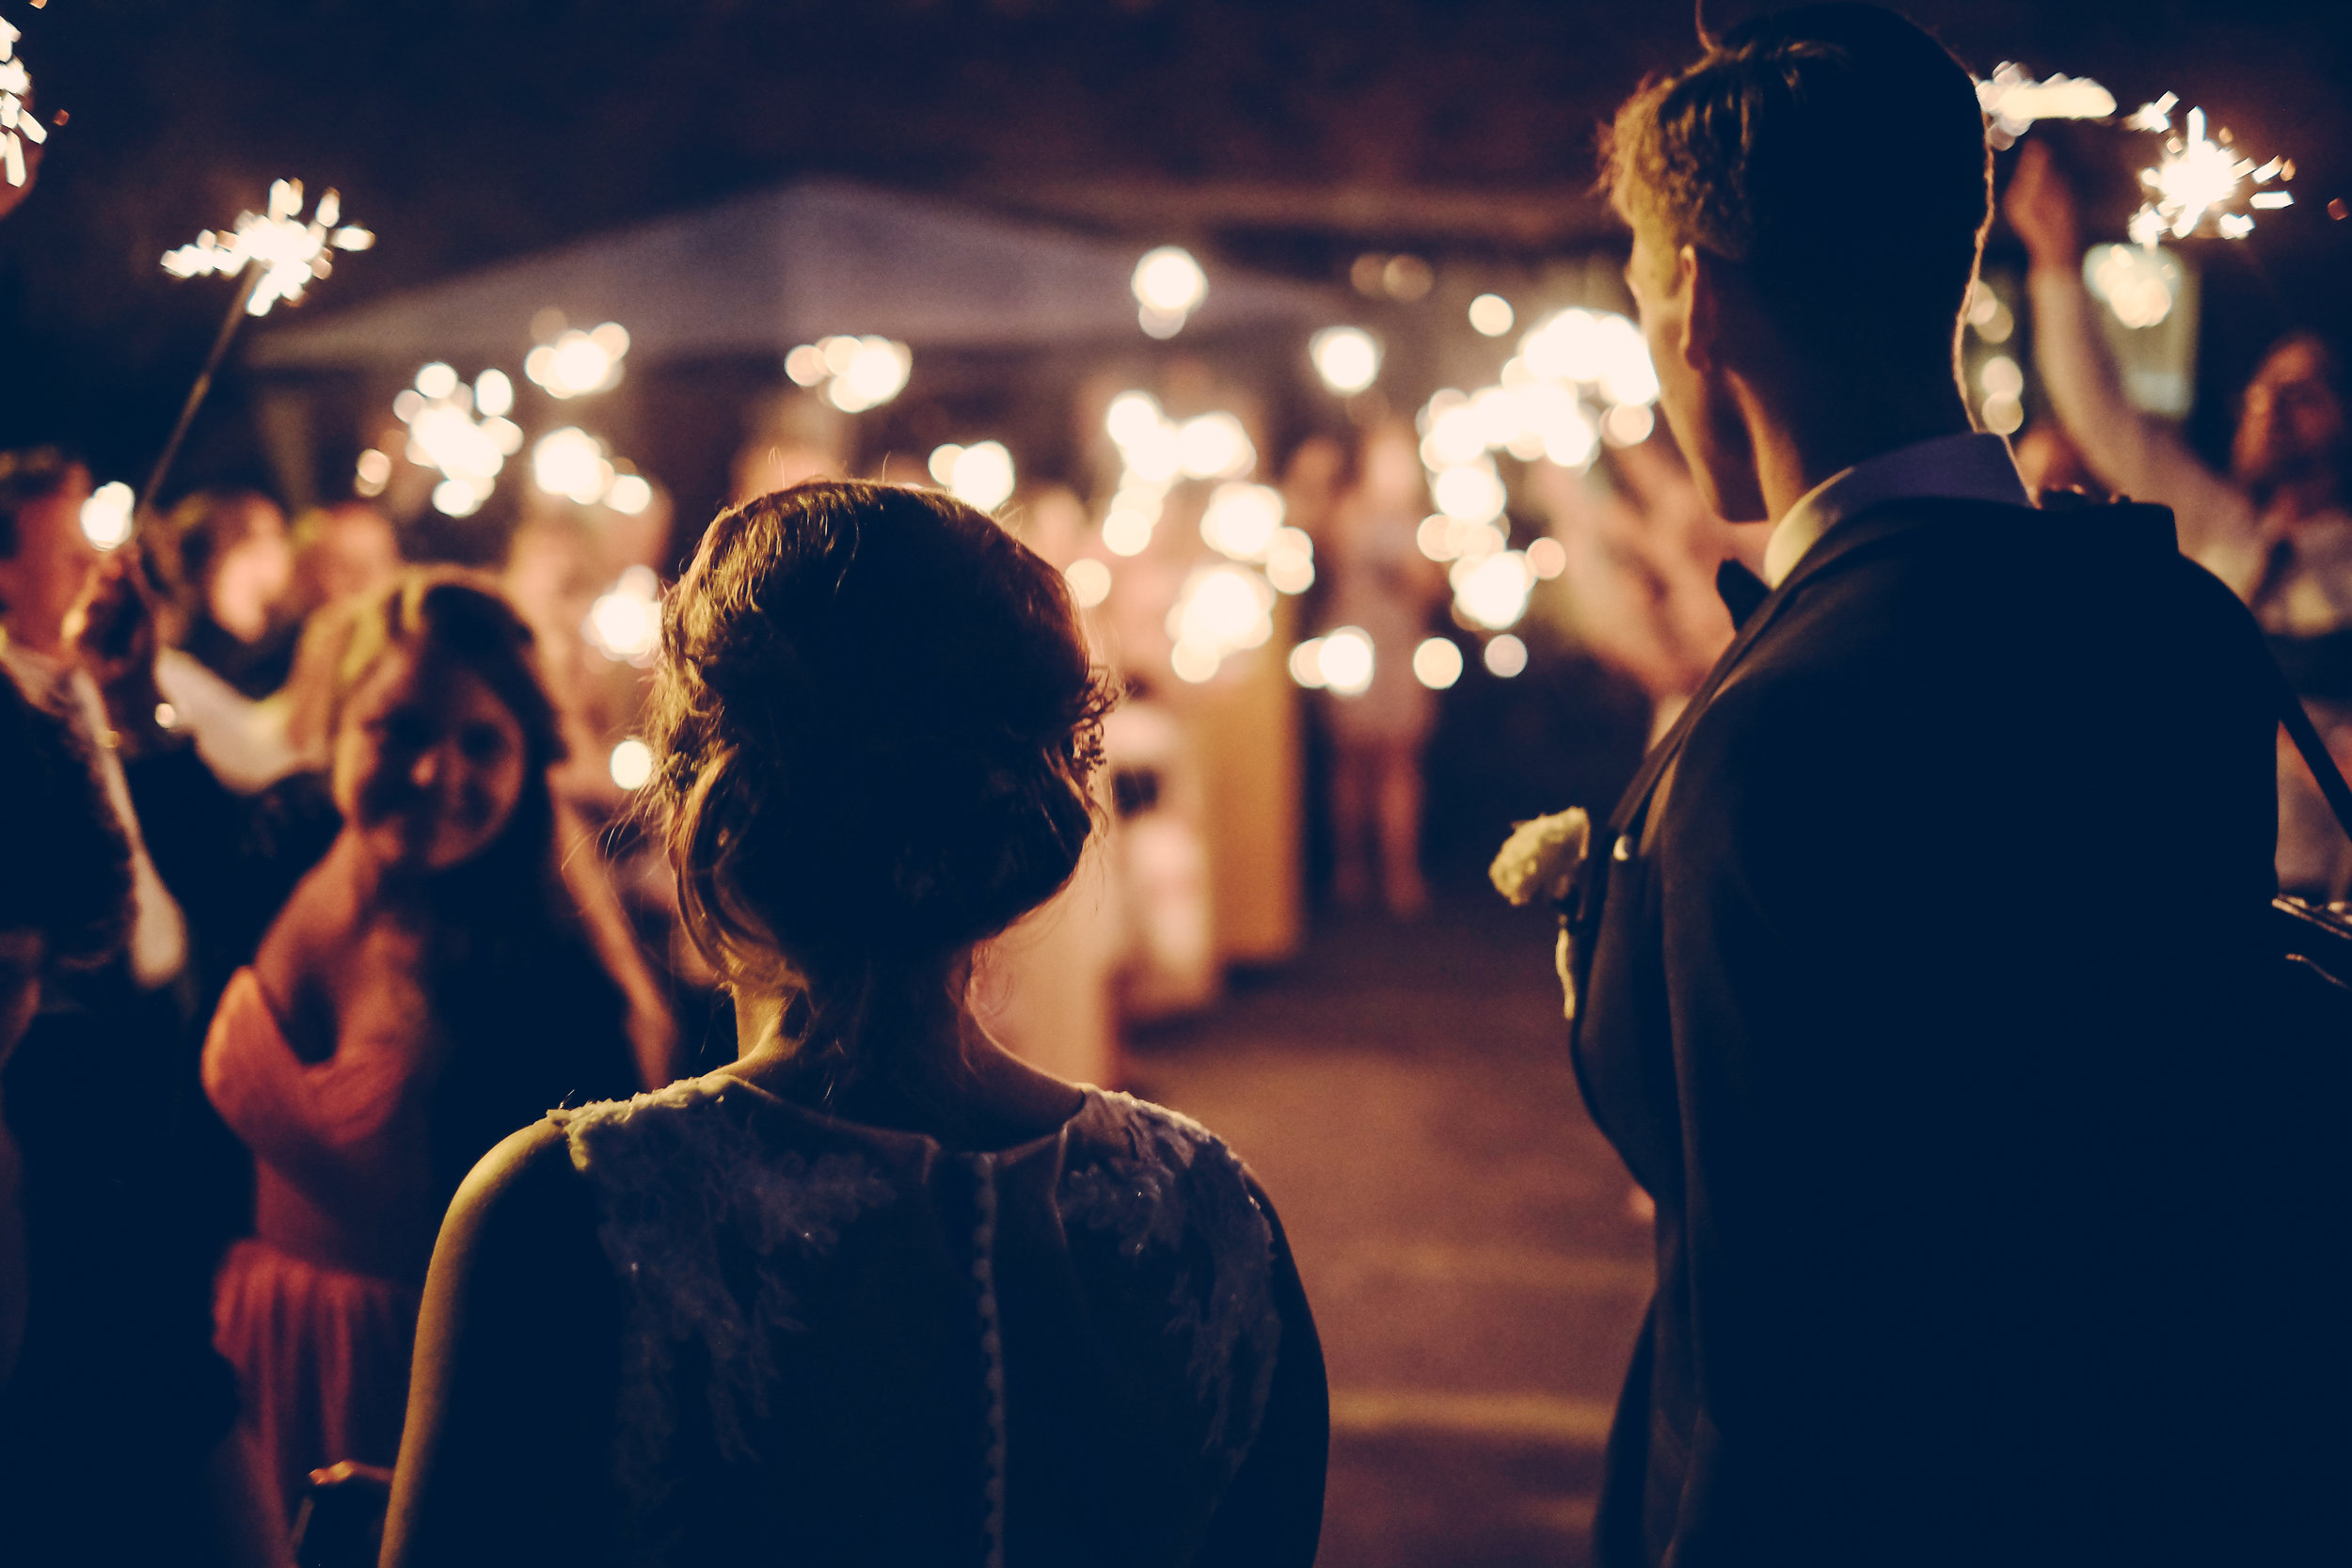 portfolio - Take a look at some of our favorite wedding films!